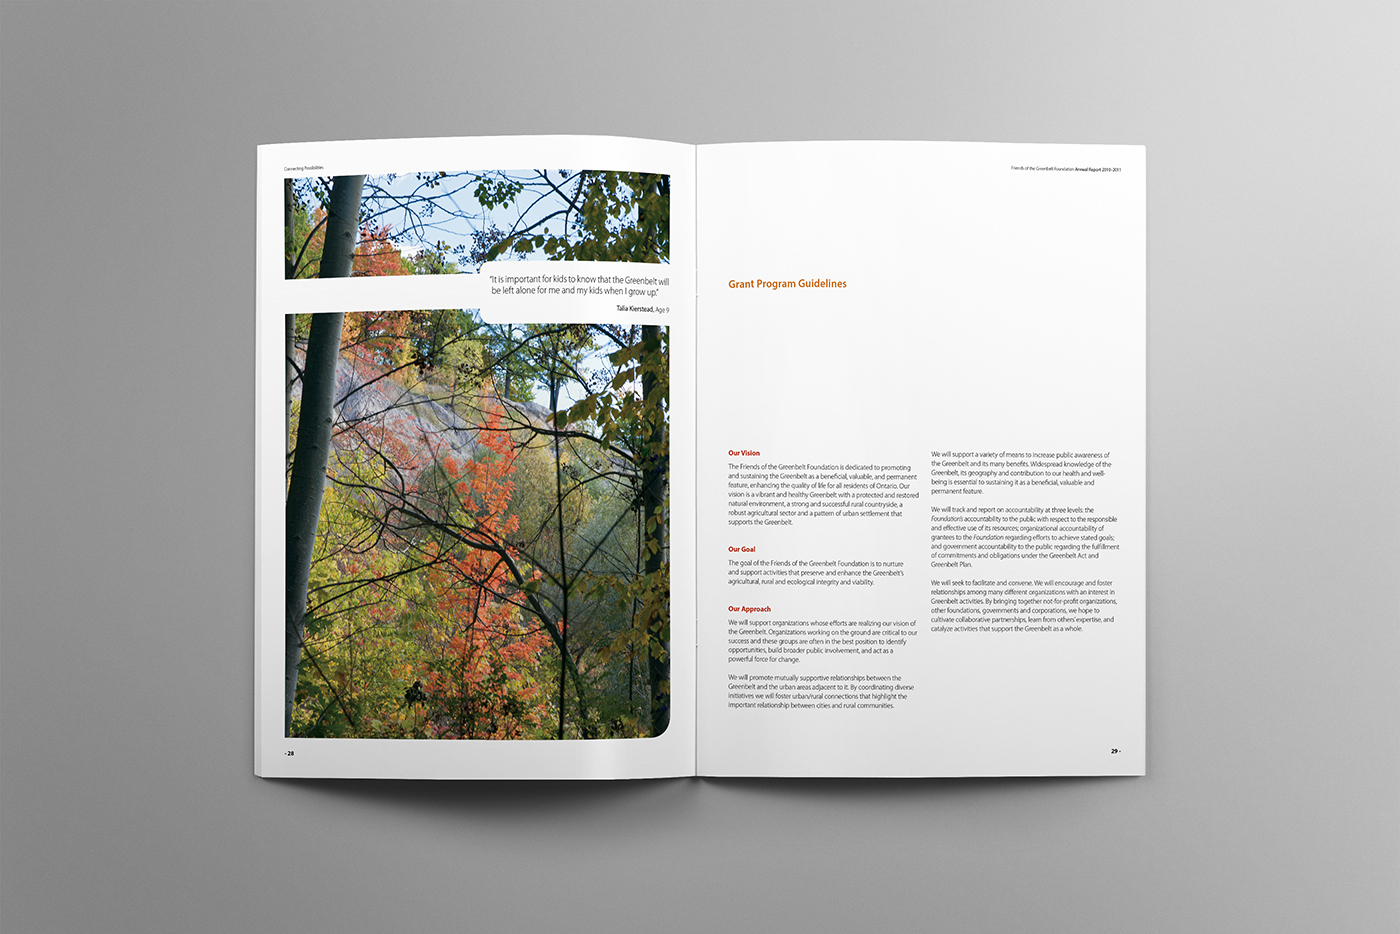 Waterfall spread in autumn for greenbelt annual.